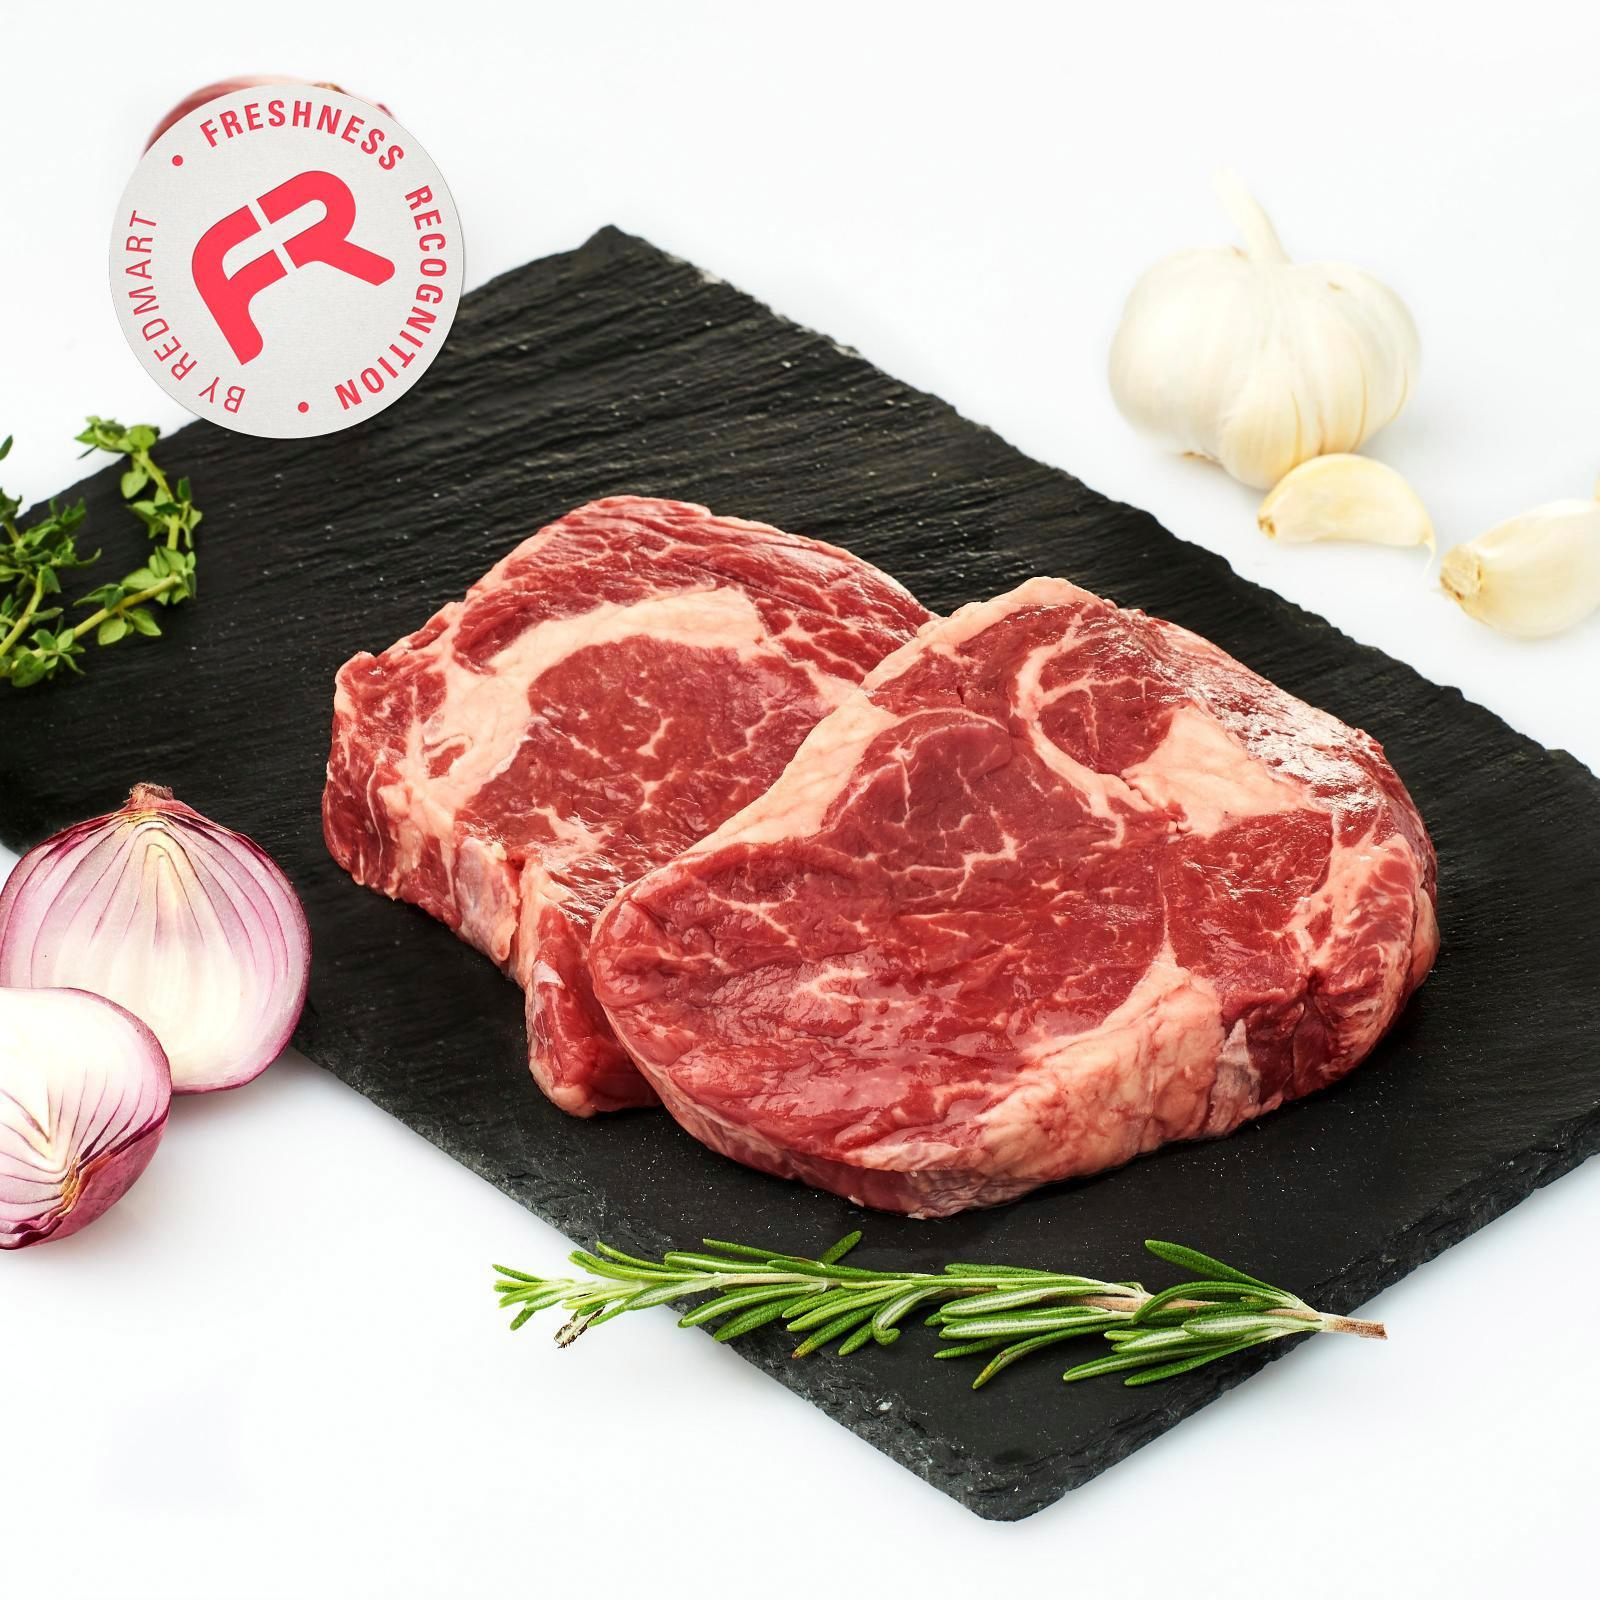 Redmart Grass Fed Angus Ribeye Beef (2 Pcs) - New Zealand By Redmart.